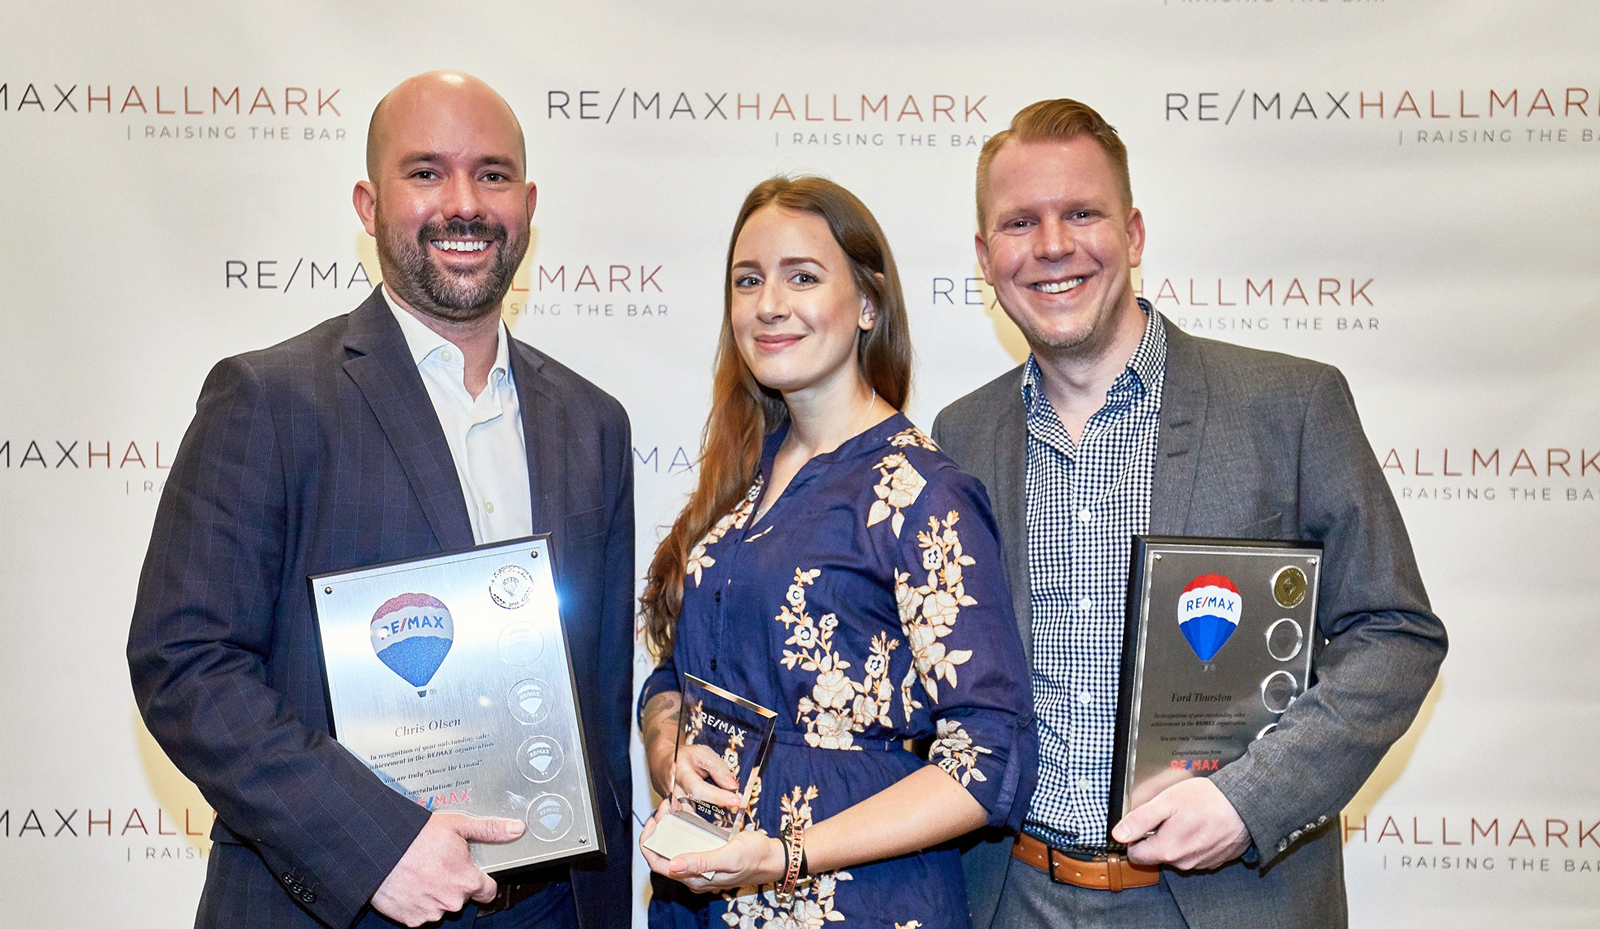 Thurston Olsen Real Estate Team Platinum Club Award RE/MAX. Chris Olsen, Andrea Humeniuk, Ford Thurston pictured holding awards in front of a RE/MAX Hallmark step and repeat backdrop.